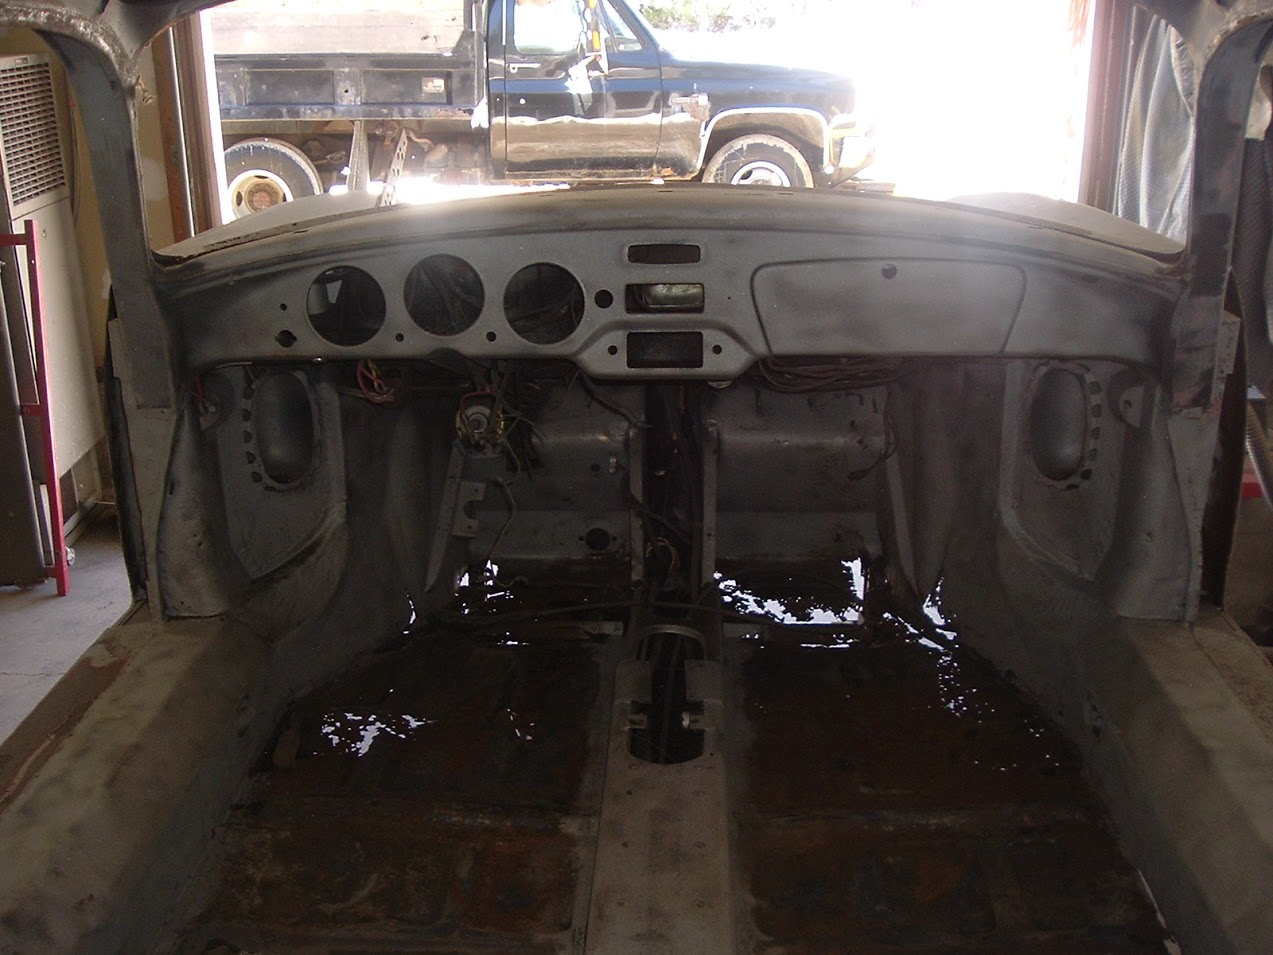 Rotted Porsche 356 Floors